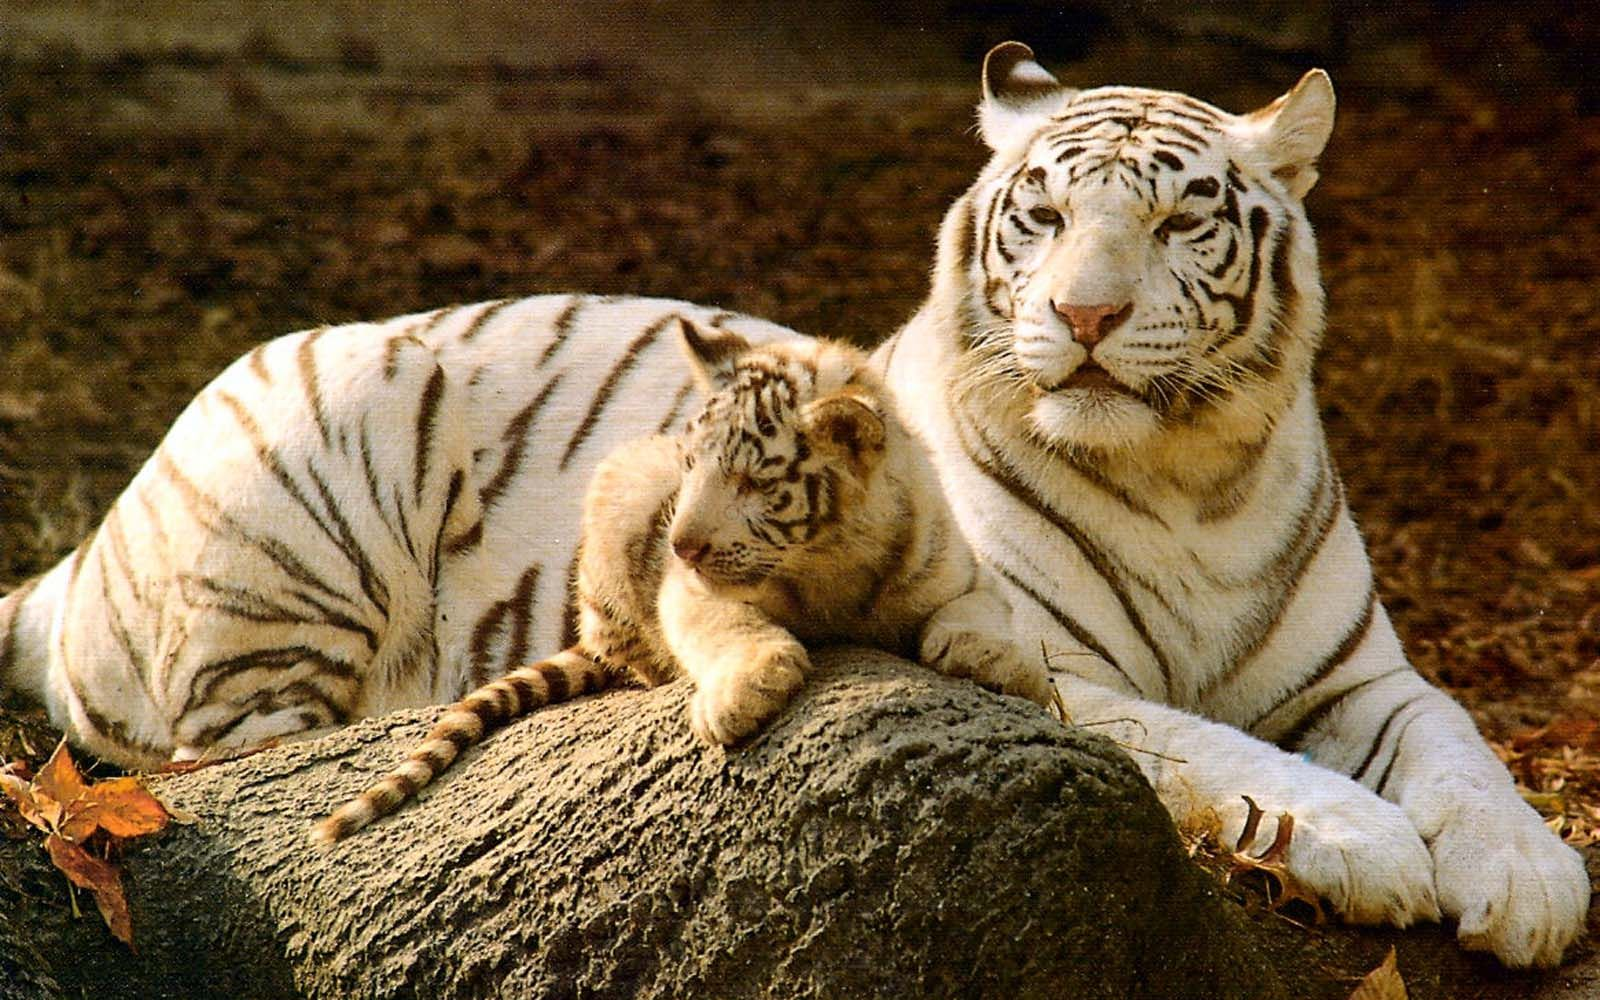 White Tiger Cub Wallpaper Hd Tiger Hd Wallpapers Mobile Wallpapers